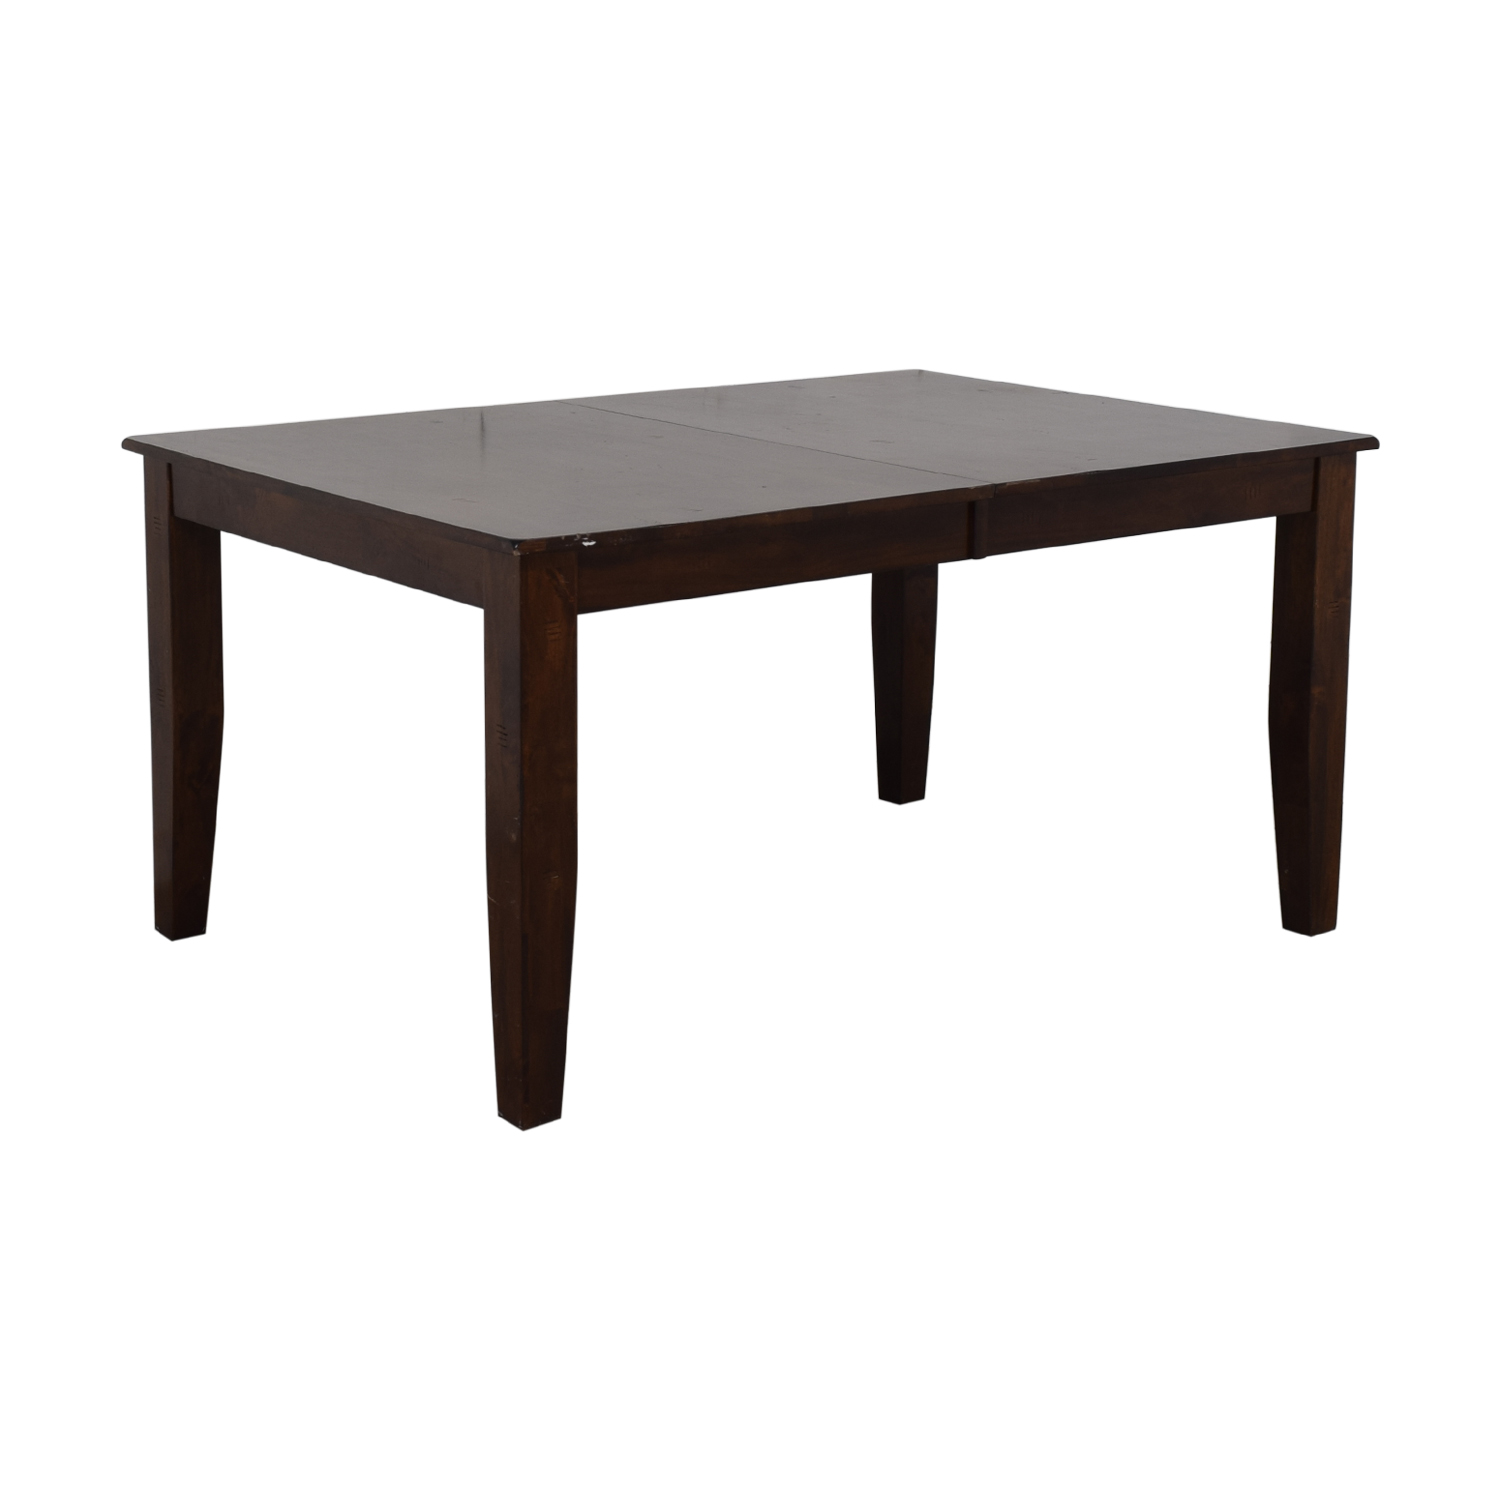 Raymour & Flanigan Raymour & Flanigan Kona Dining Table with Leaf nyc